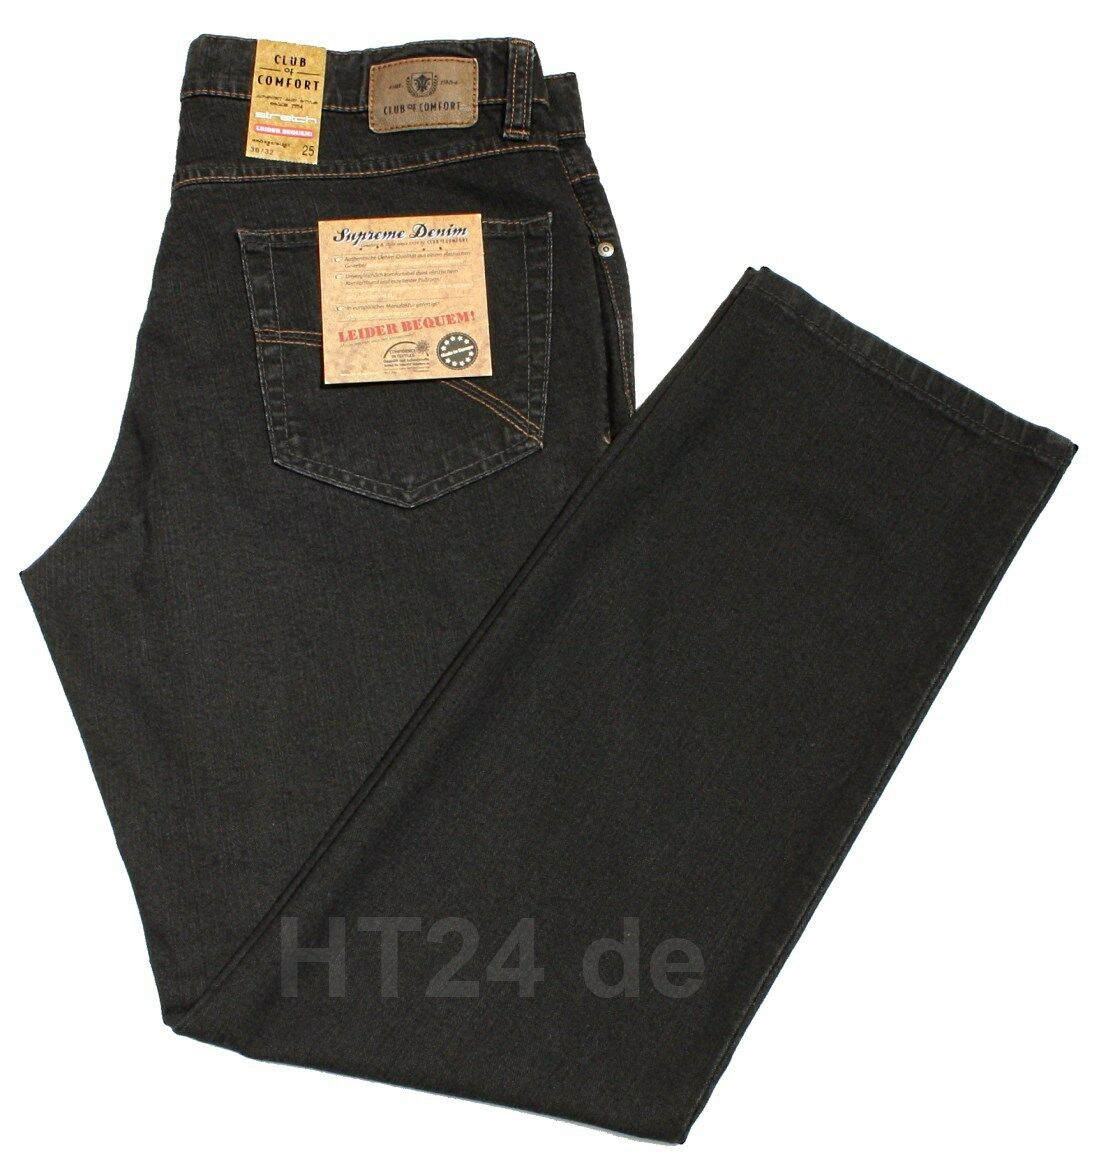 Club of Comfort Stretch Jeans James 4631 (2) Grigio Nero Mis. 48 a 60 FivePocket